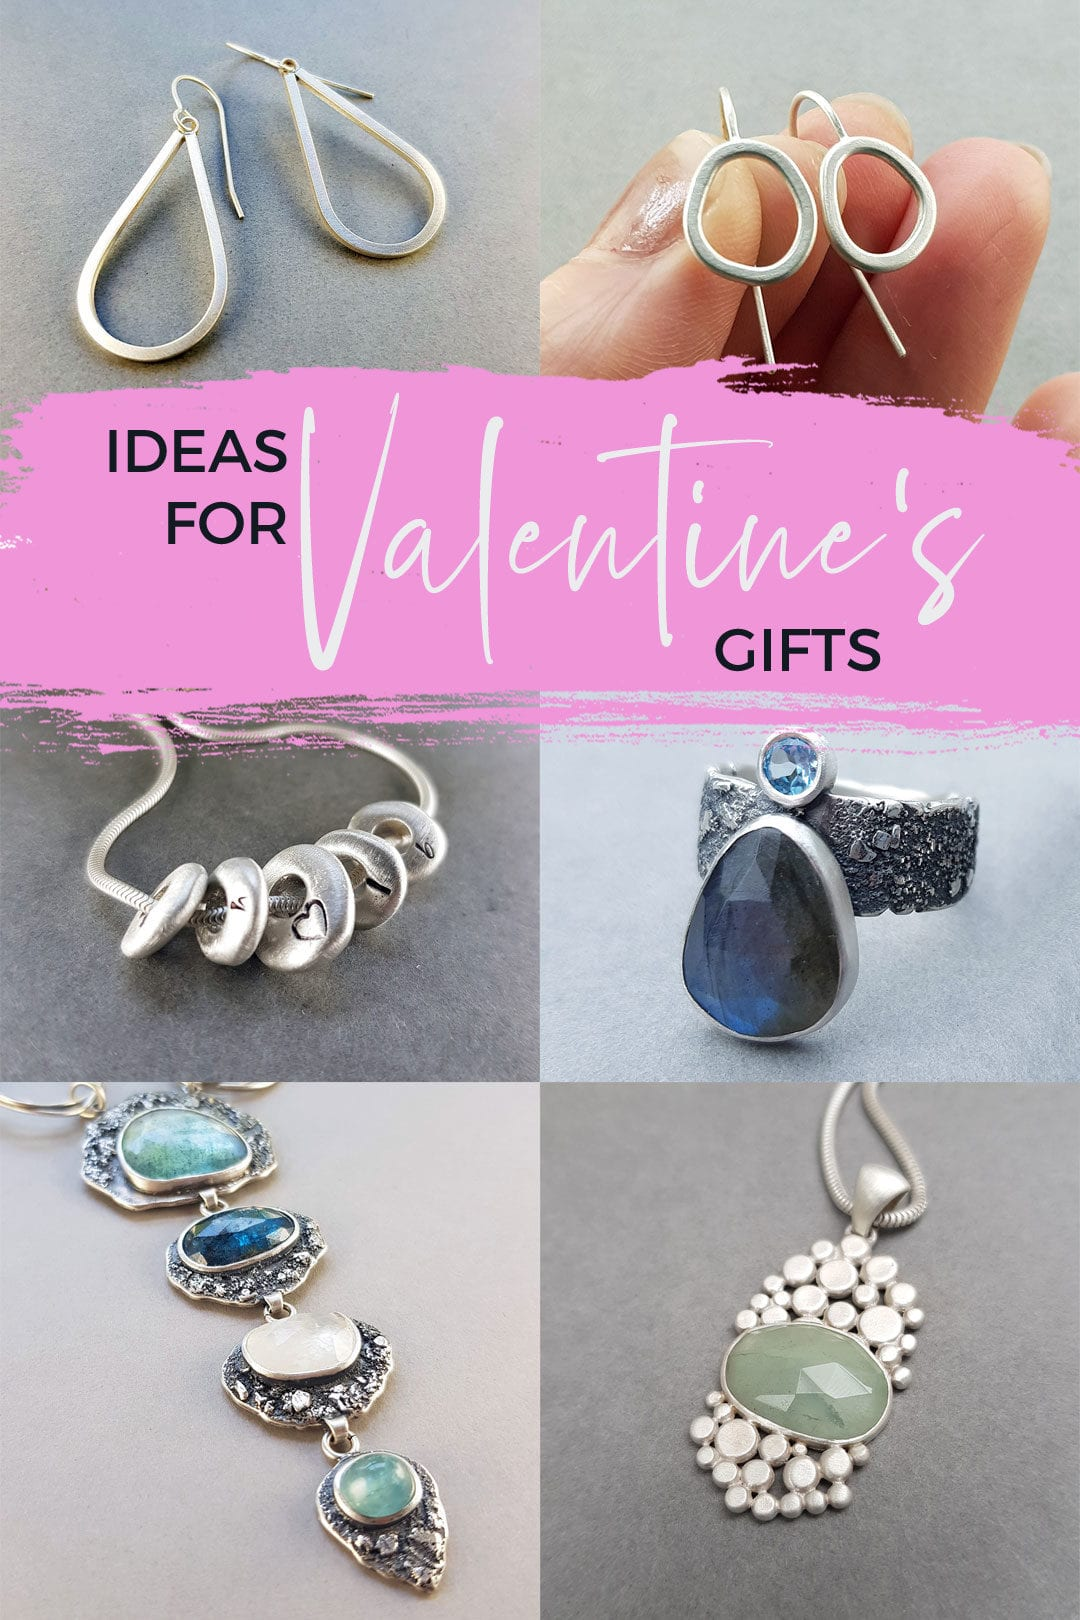 Valentine's jewellery gift ideas